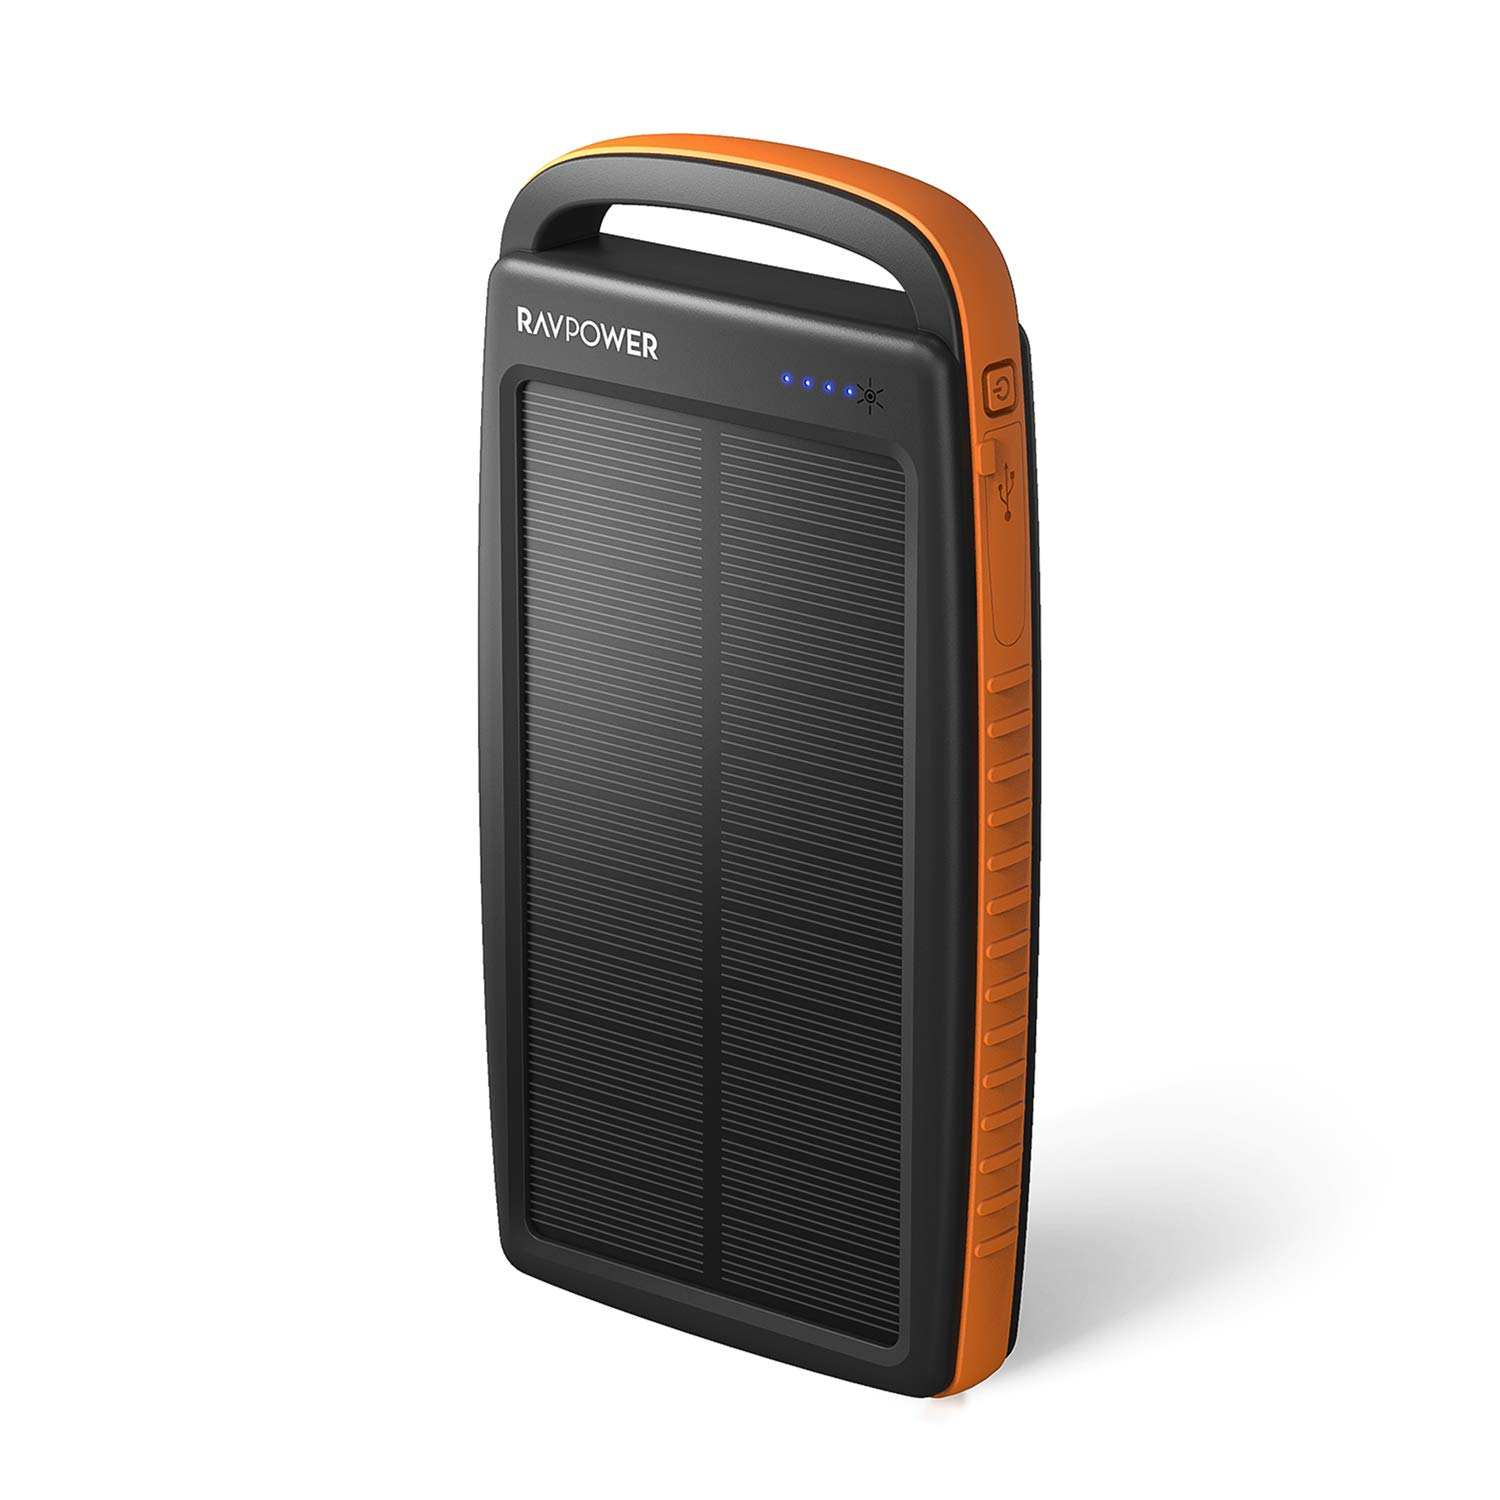 Solar Charger 20000mAh RAVPower Portable Charger Solar Power Bank with Dual 2.4A Outputs, External Battery Pack with Flashlight for Smartphones, Tablets and More(Orange)